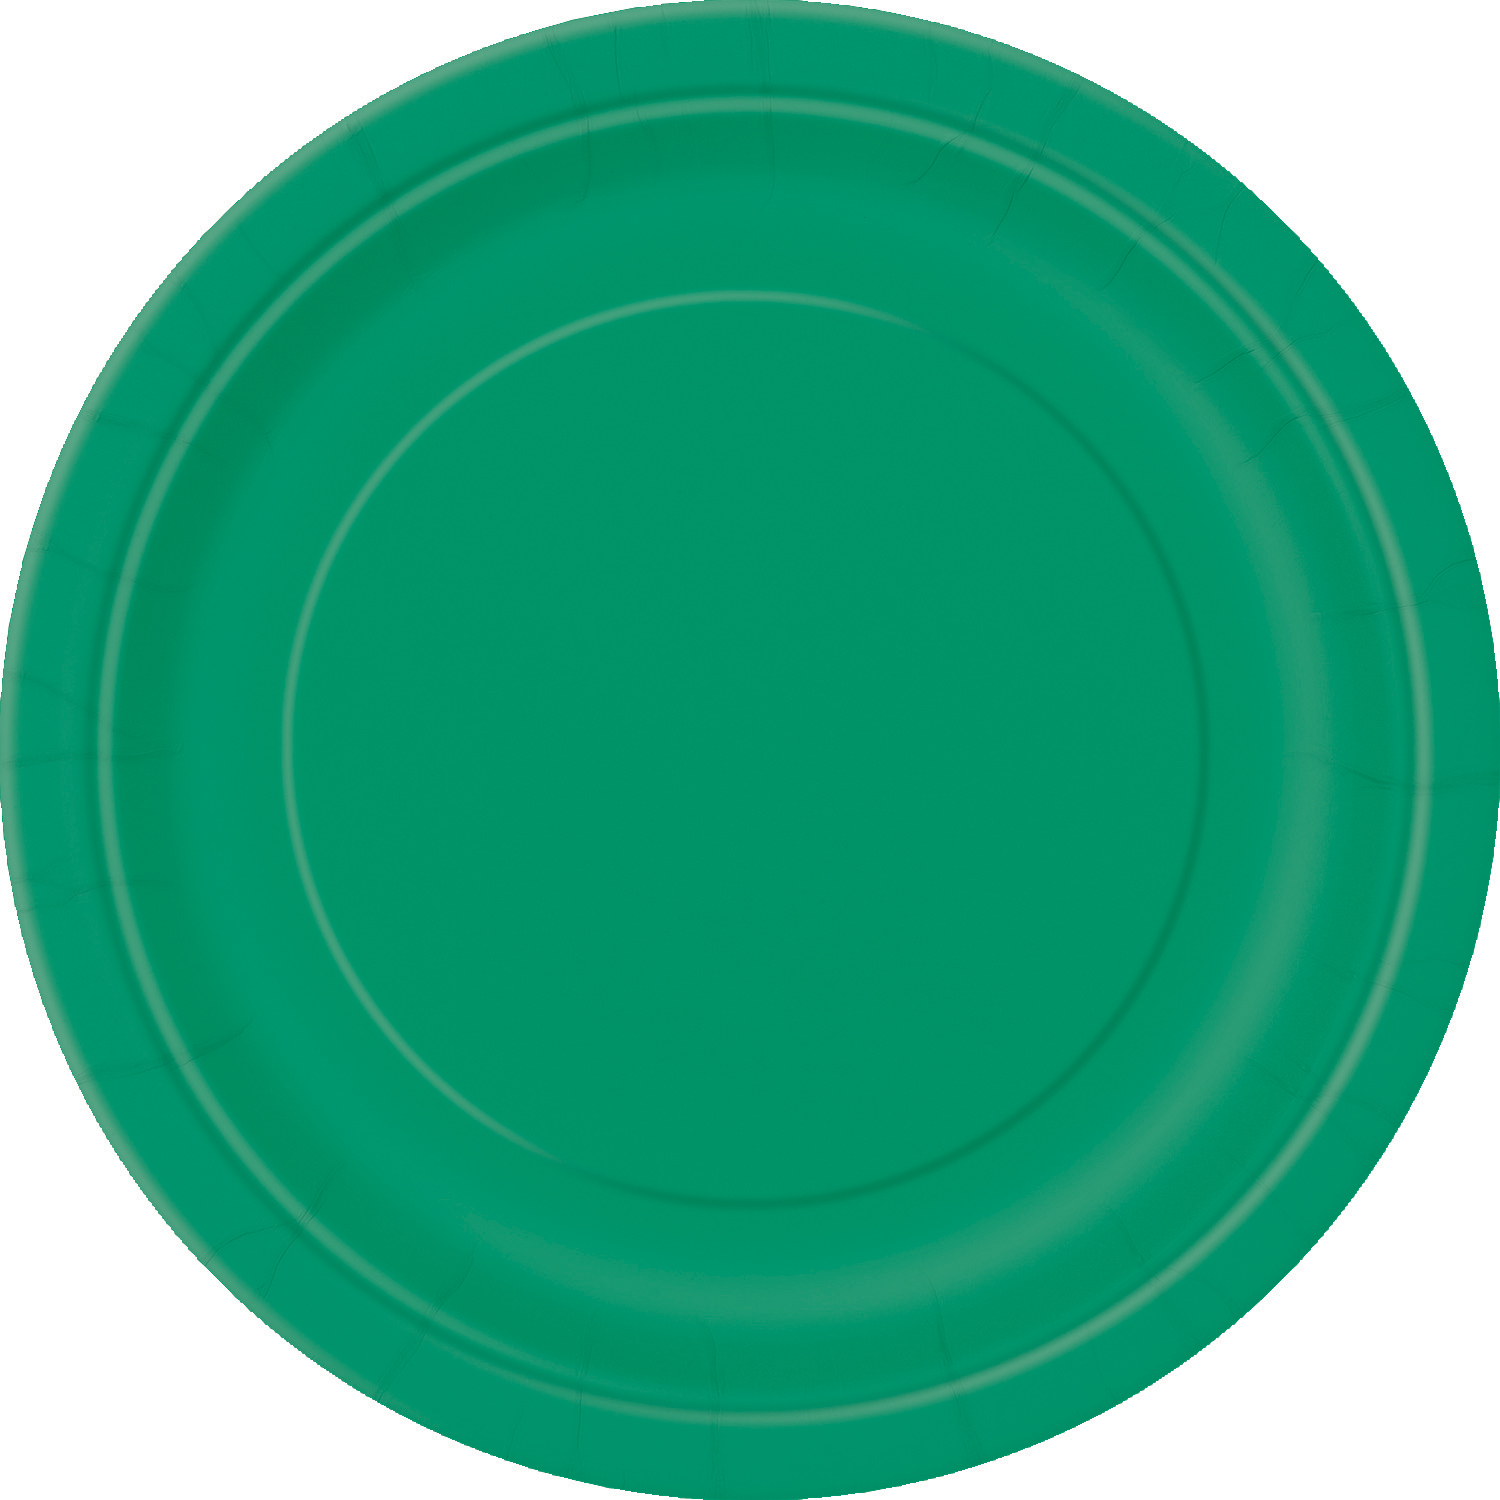 8 x green party paper dinner plates cheap paper plates clearance